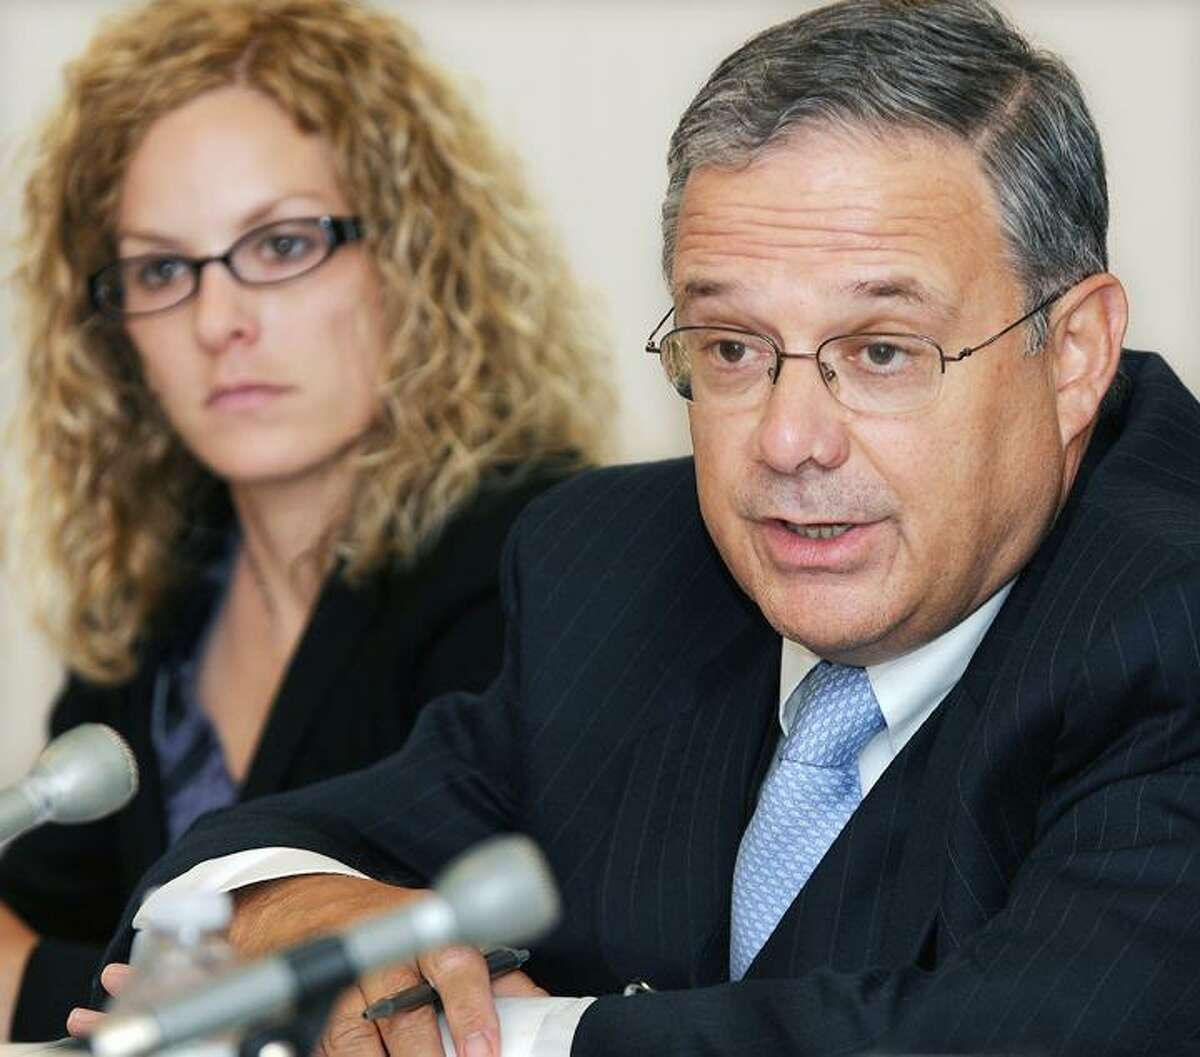 William J. Corvo, president of Kleen Energy Systems, is questioned at a public hearing about the Middletown power plant explosion held at the Public Utility Control Department in New Britain. At left is attorney Carrie Larson of Pullman and Comley, legal counsel for Kleen Energy. (Catherine Avalone, The Middletown Press)